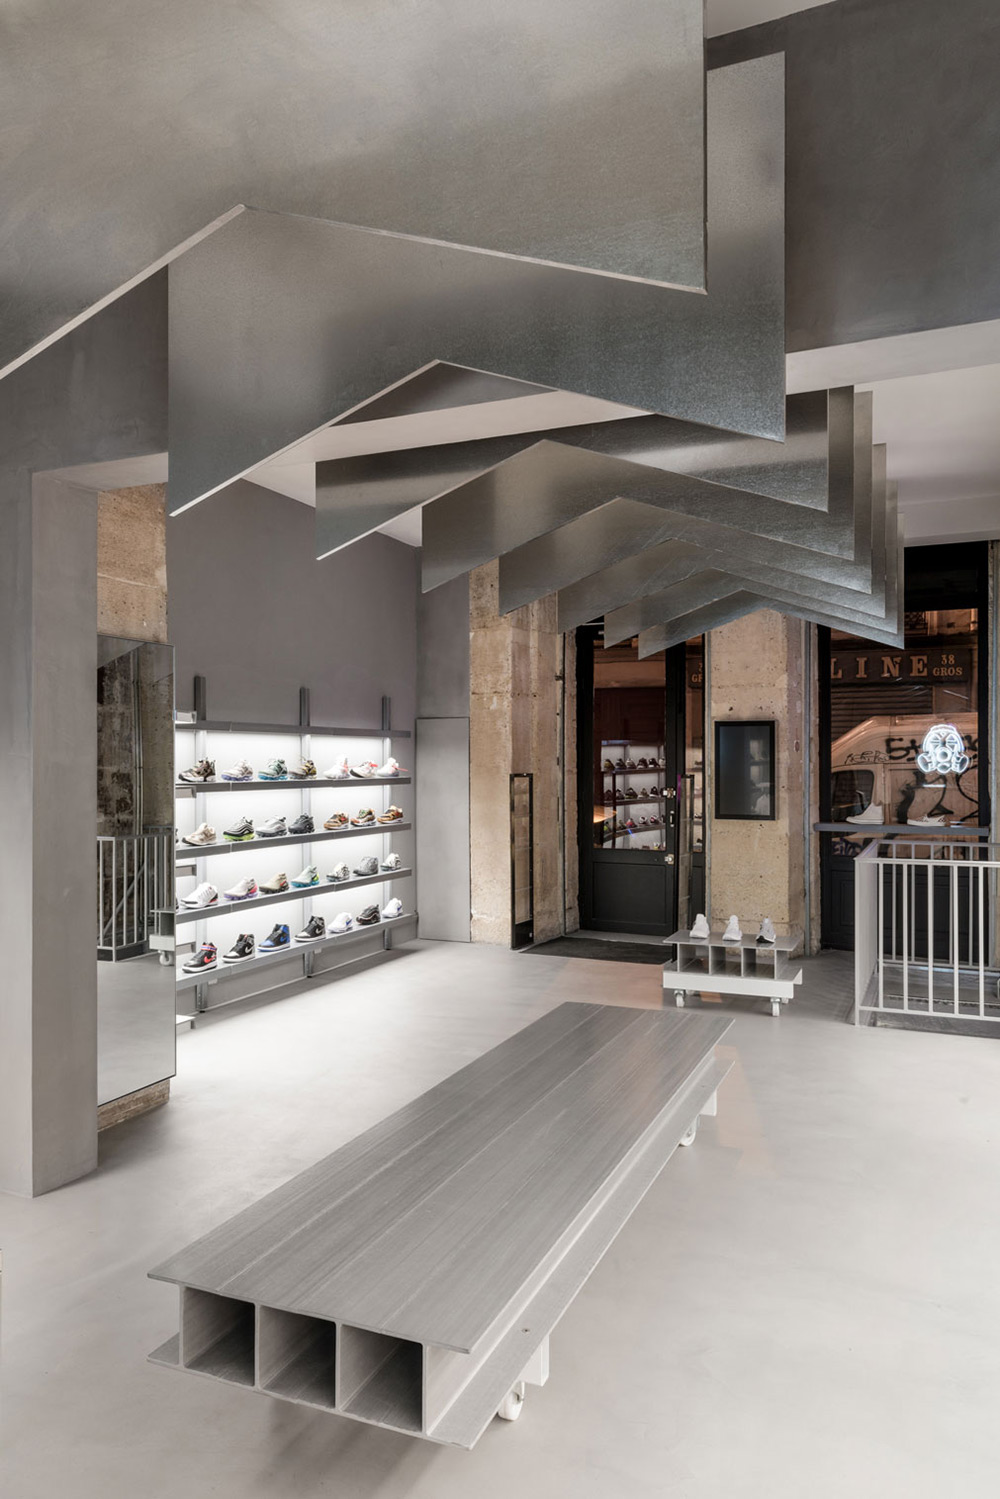 In Pictures: Footpatrol chooses Paris for its first store